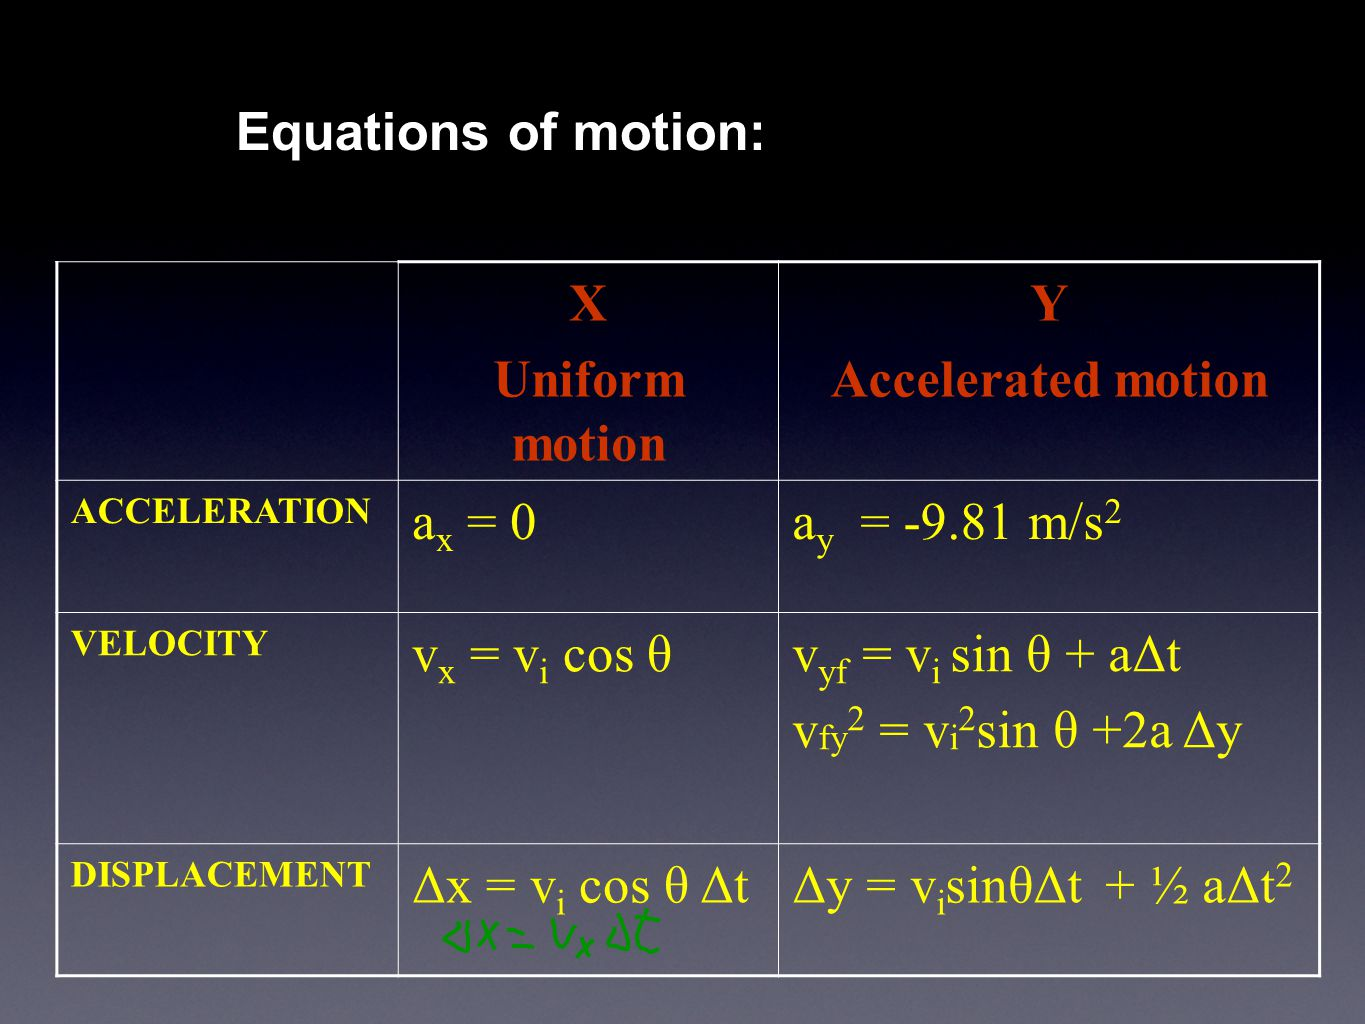 Equations of motion: X Uniform motion Y Accelerated motion ACCELERATION a x = 0a y = -9.81 m/s 2 VELOCITY v x = v i cos θv yf = v i sin θ + aΔt v fy 2 = v i 2 sin θ +2a Δy DISPLACEMENT Δx = v i cos θ ΔtΔy = v i sinθΔt + ½ aΔt 2